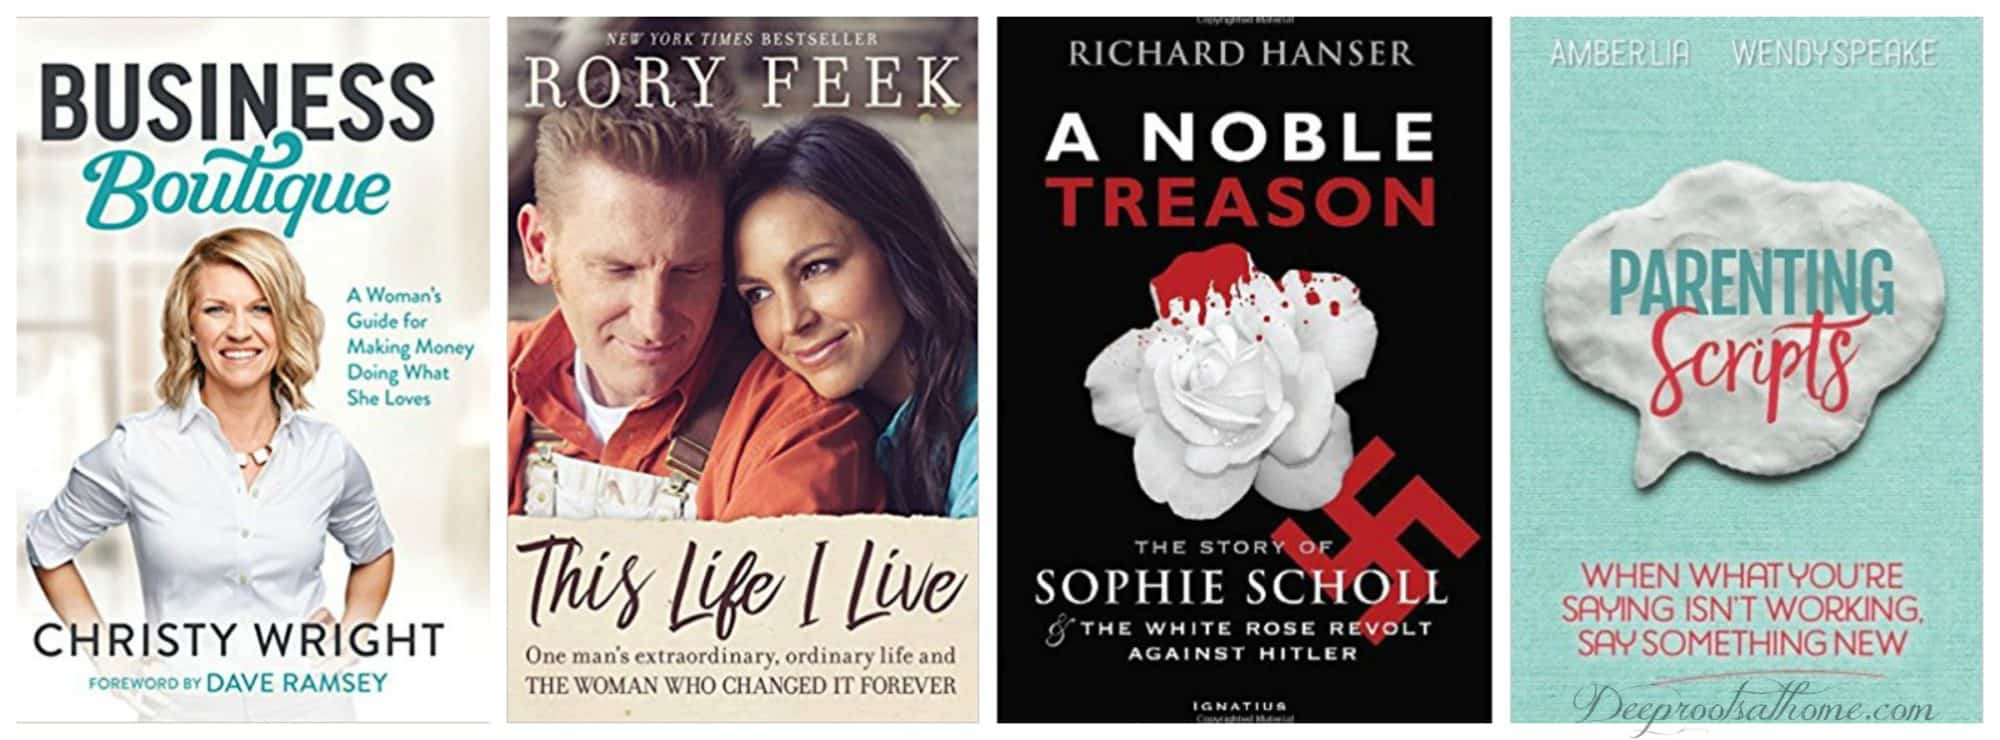 4 book covers: A Noble Treason by Sophie Scholl, White Rose Revolt Against Hitler; This Life I Live by Rory Feek; Parenting Scripts by Amber Lia and Business Boutique by Christy Wright.